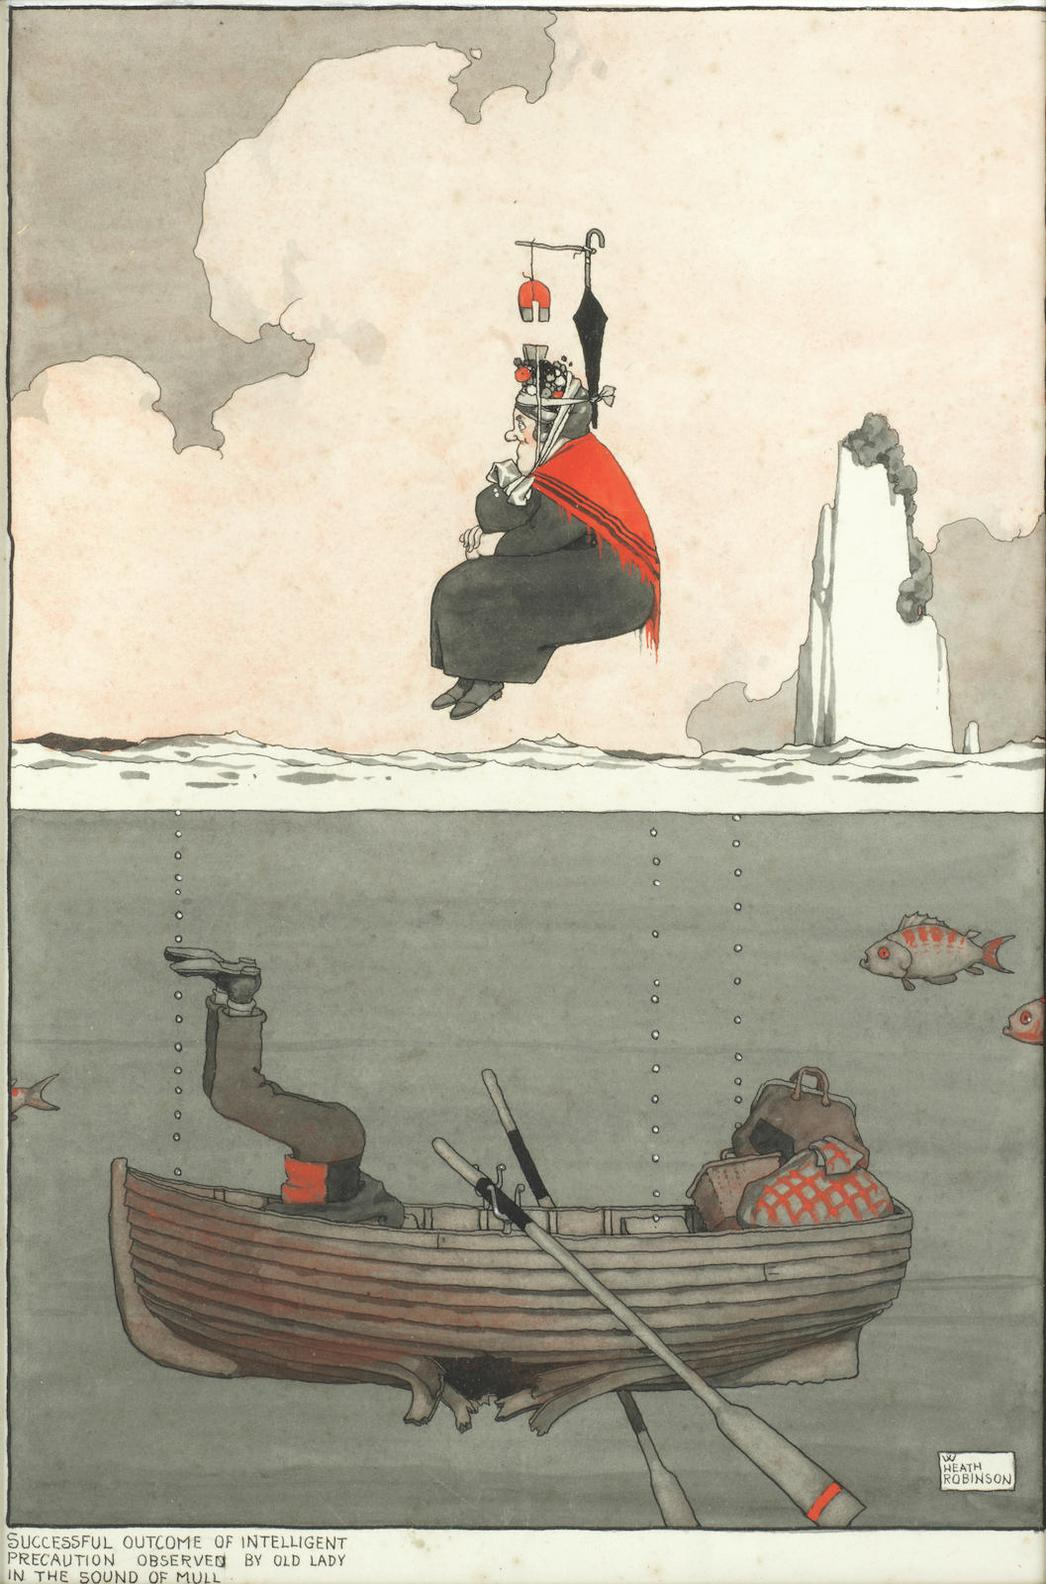 William Heath Robinson - Successful Outcome Of Intelligent Precaution Observed By Old Lady In The Sound Of Mull-